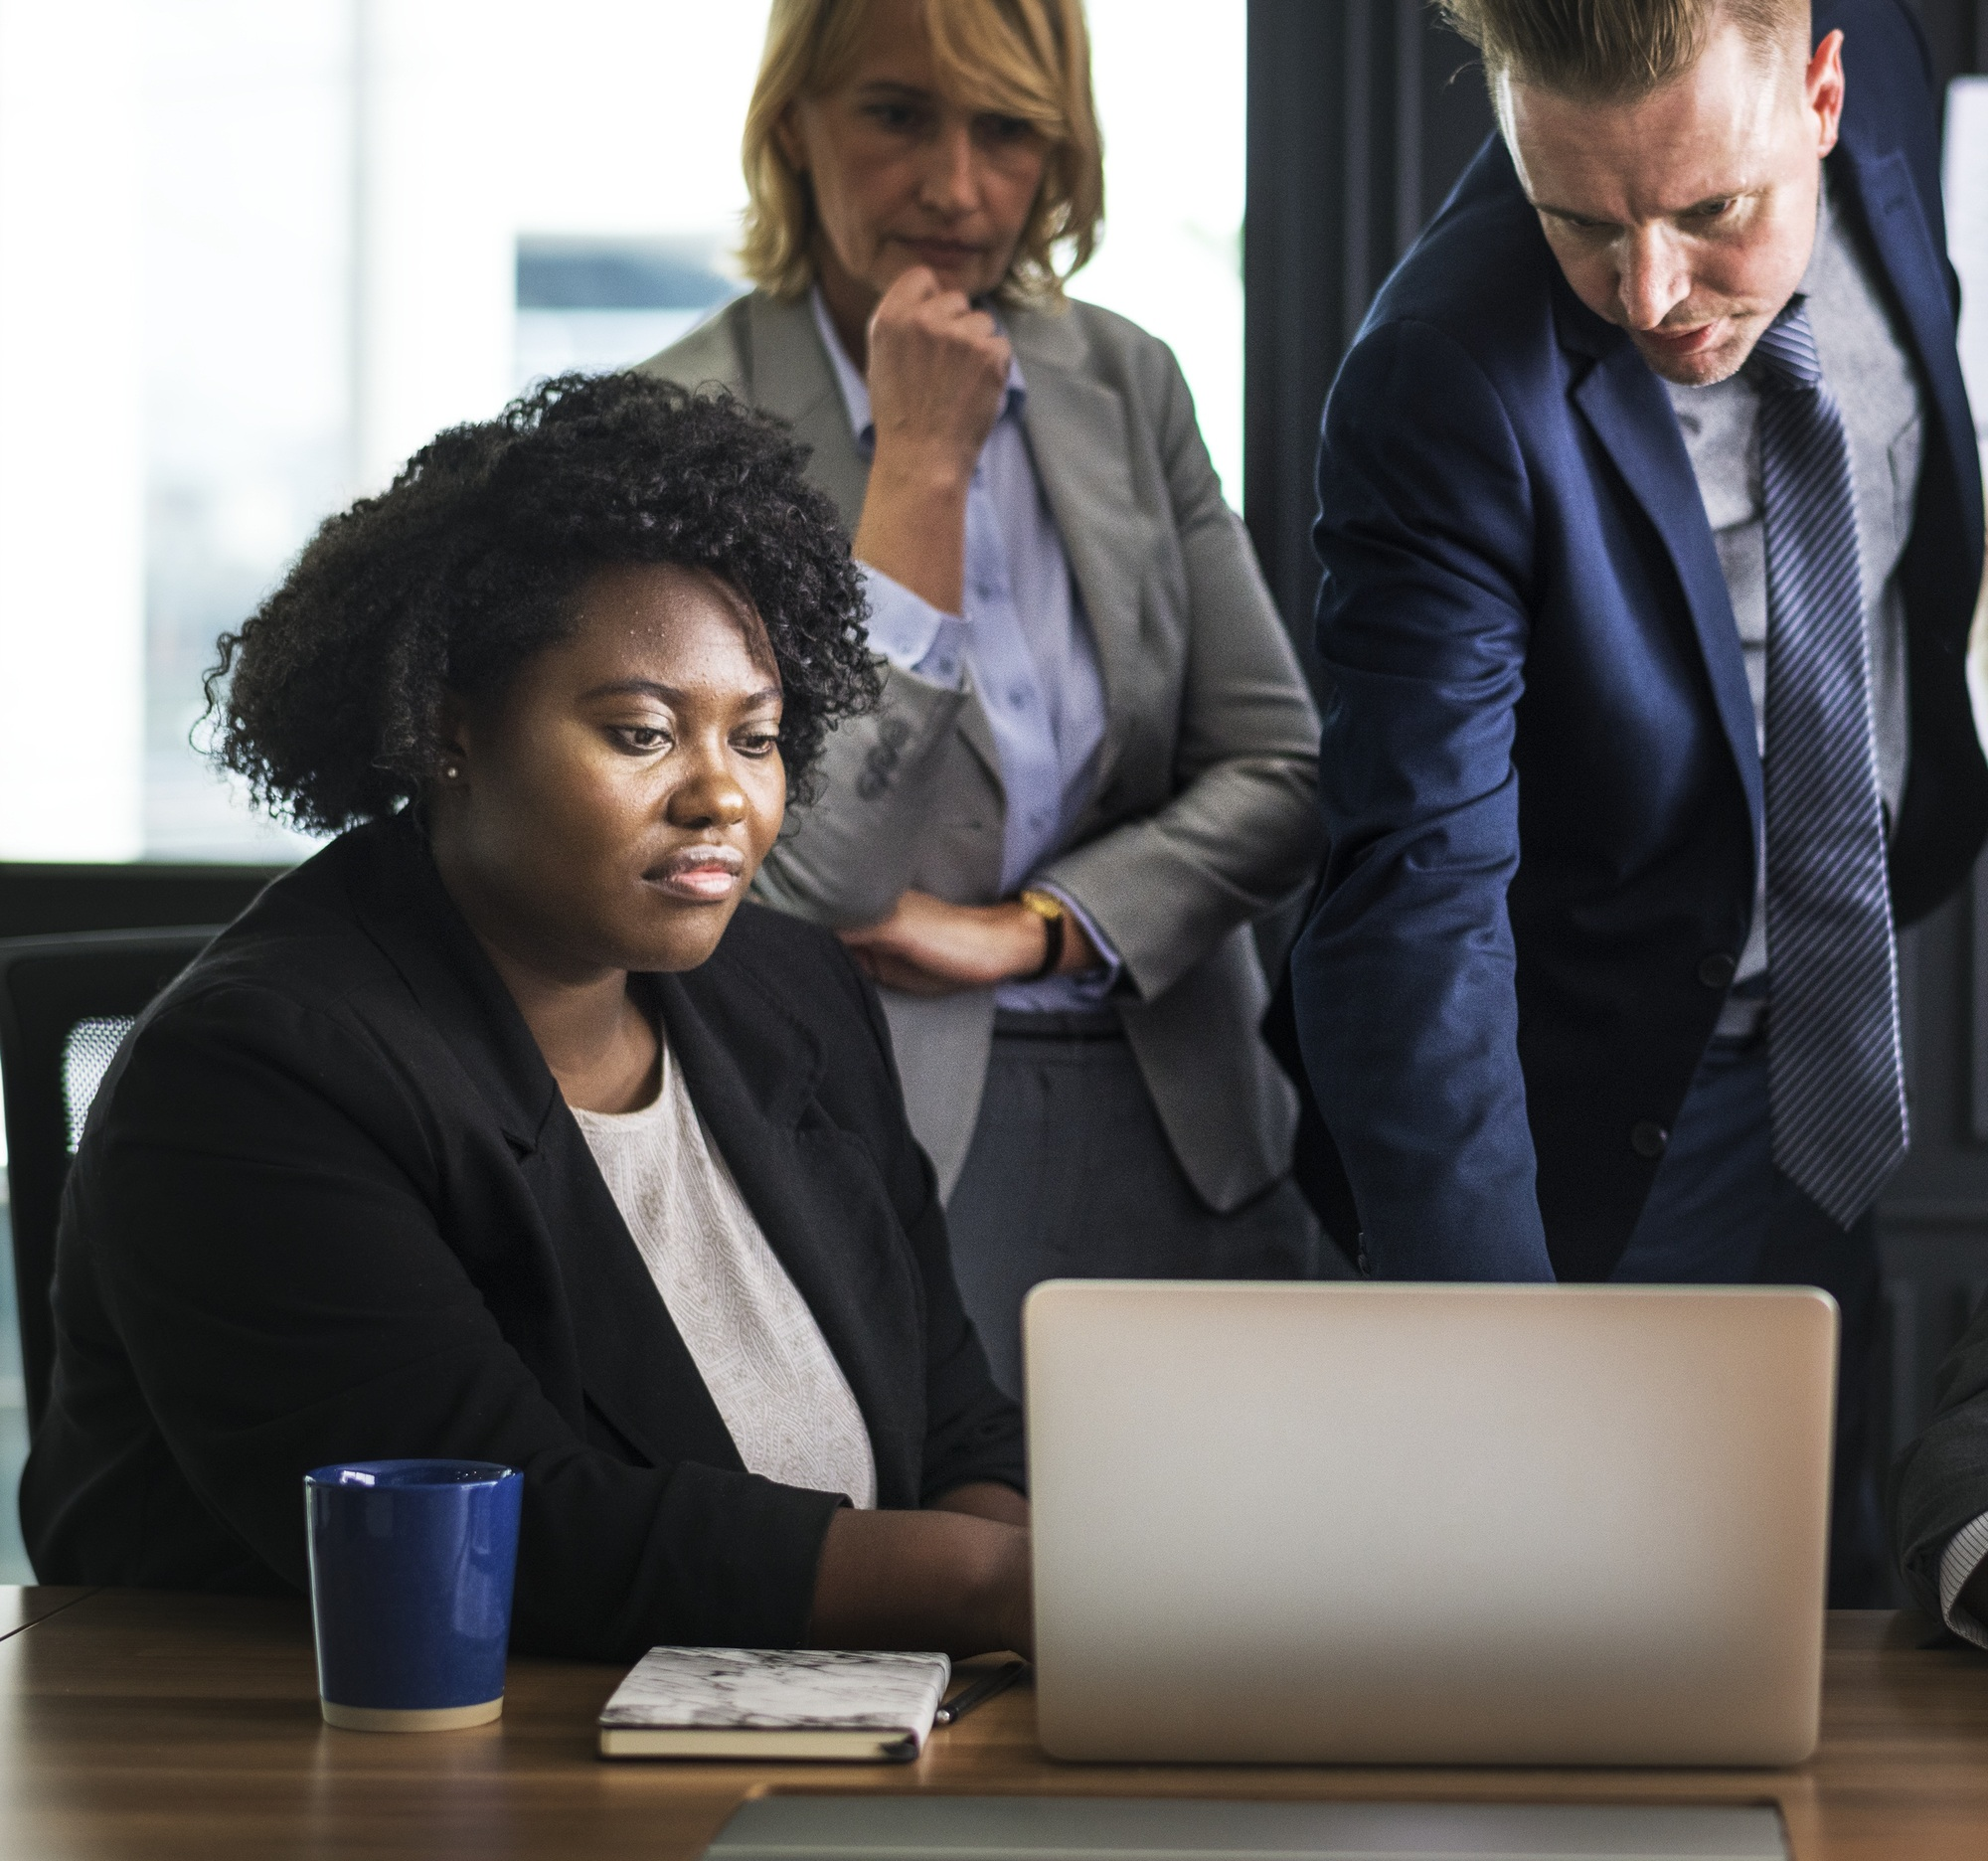 group of business people looking at laptop